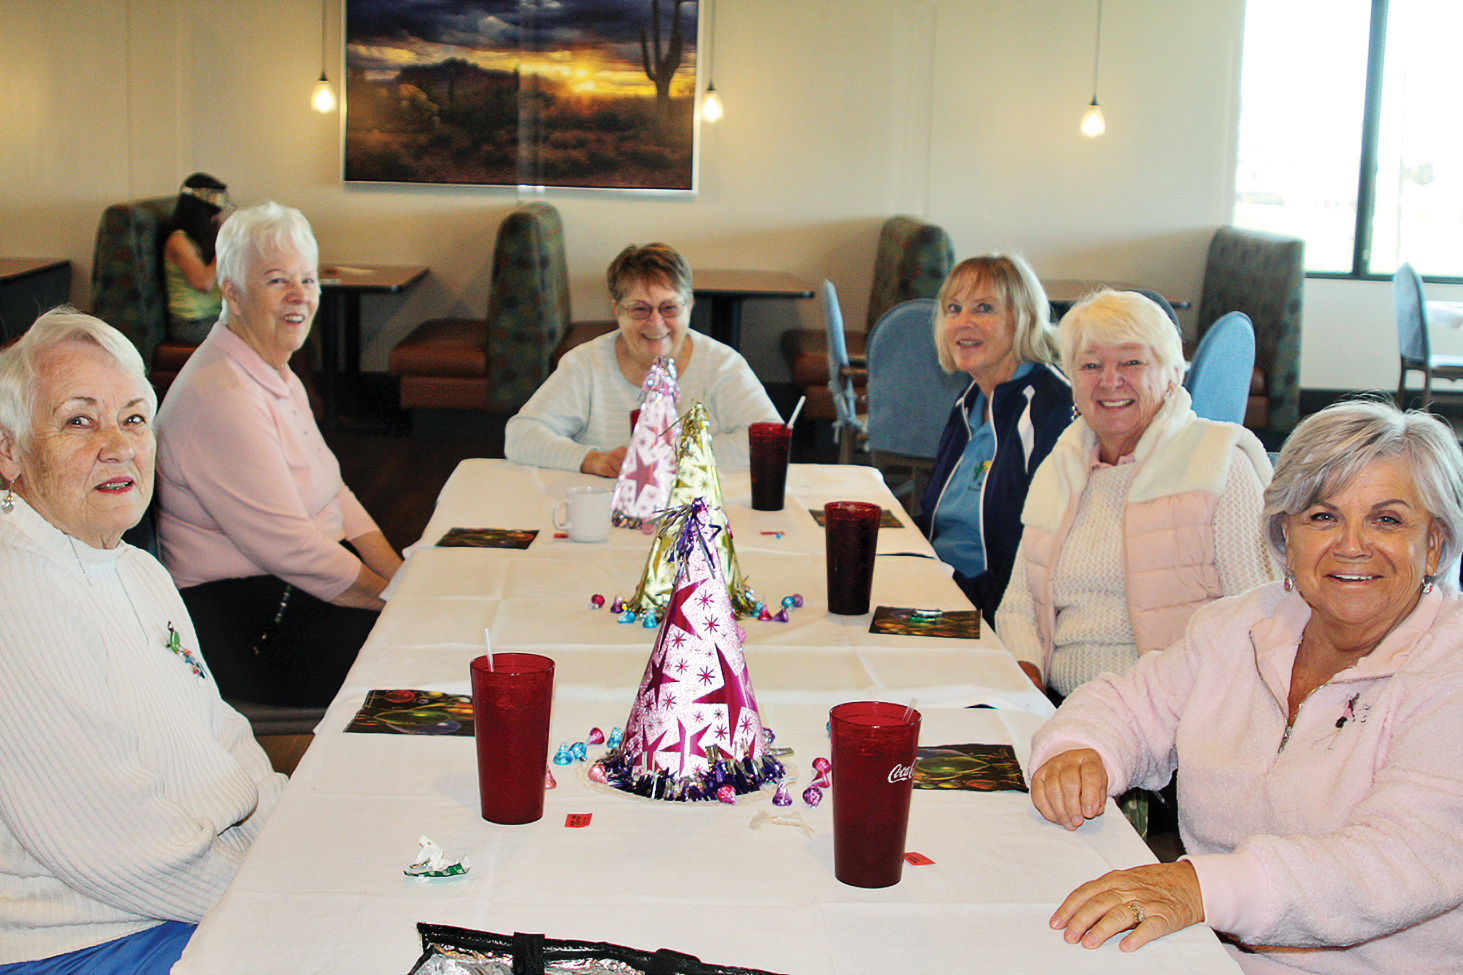 Pictured (left to right) are Barb Edwards, Judy Johnston, Betty Teal, Kitty Determan, Pam Tiffany, and Irene Schlenker.